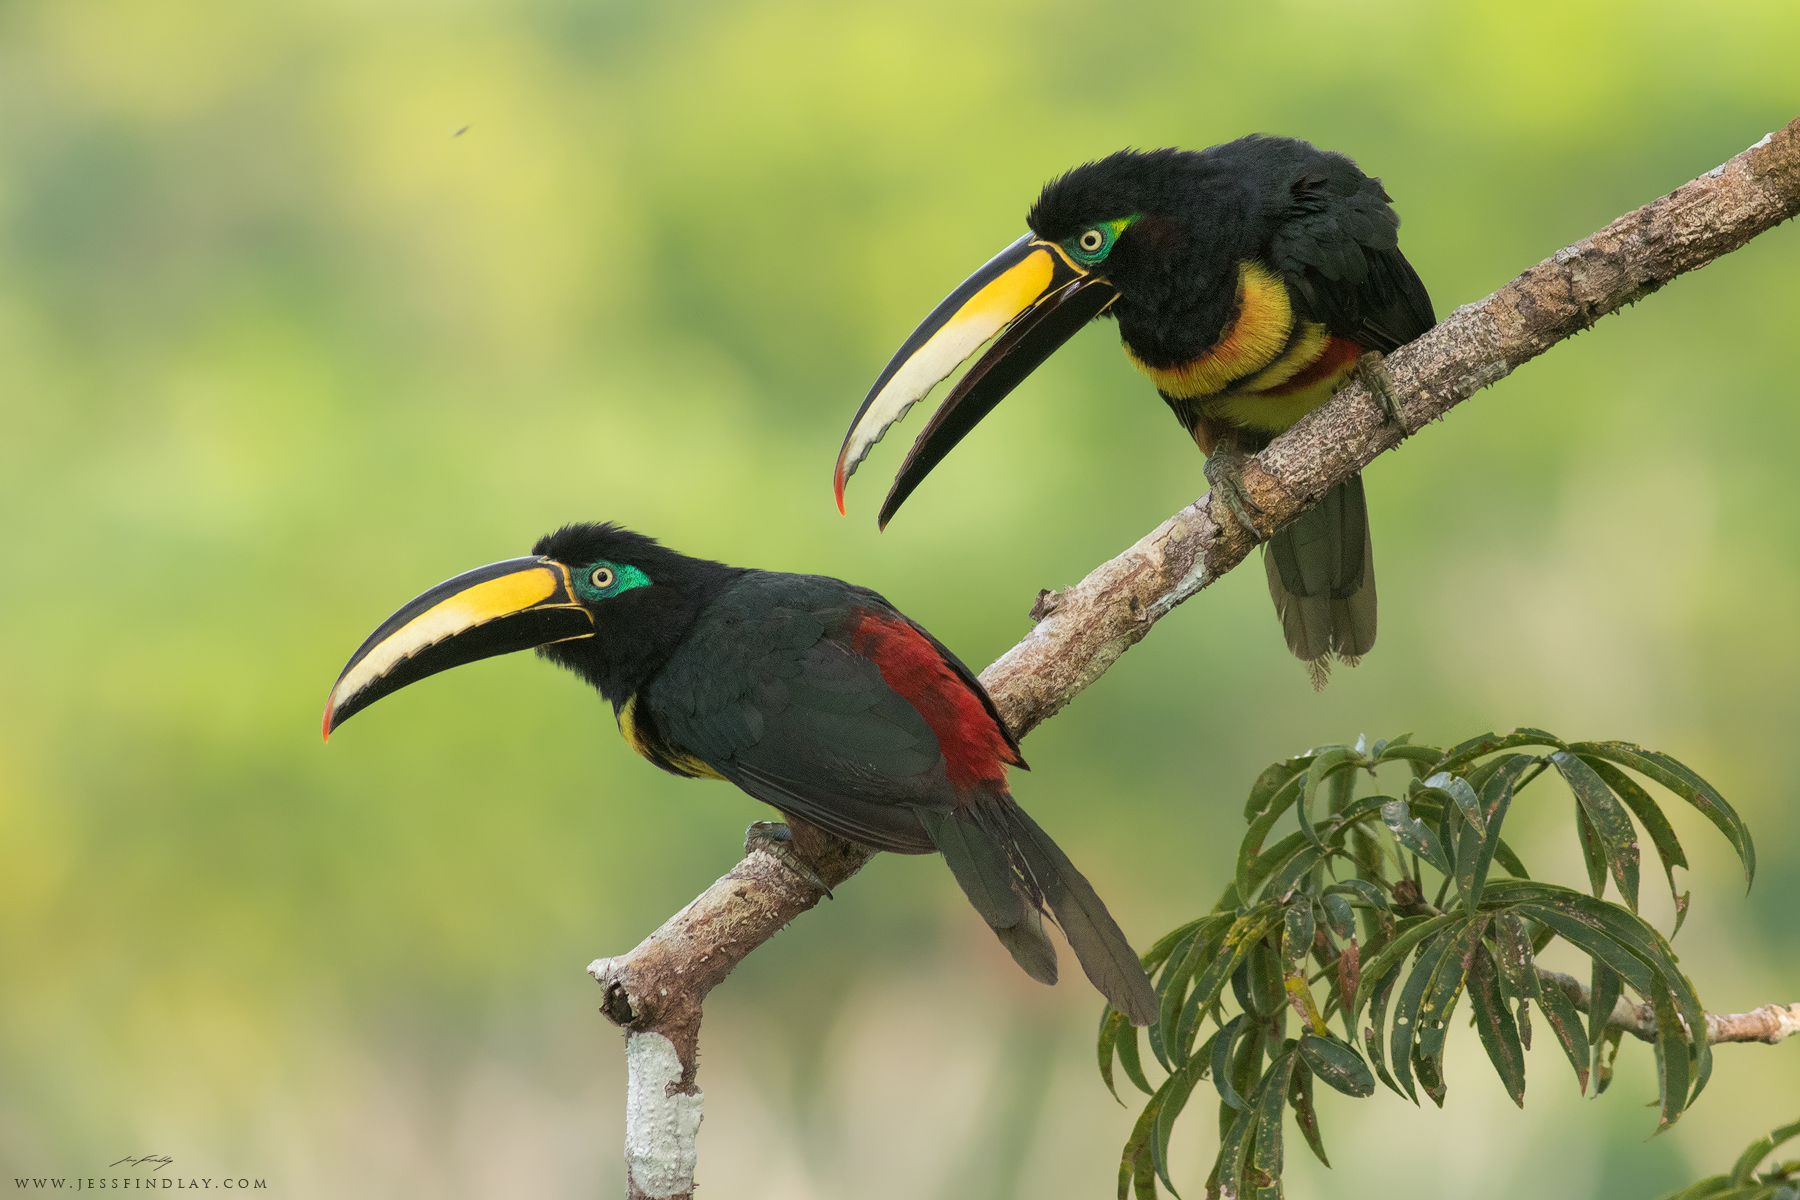 A pair of Many-banded Aracari perched high in the canopy of a giant kapok tree, deep in the Ecuadorian Amazon.